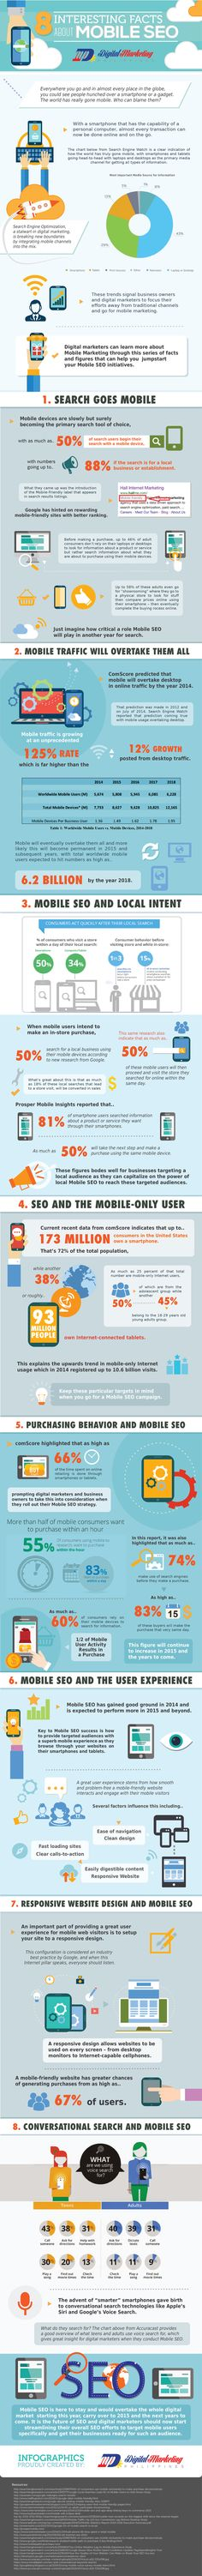 8 Interesting Facts About Mobile SEO (Infographic) | via Mary Lumley | BornToBeSocial.com | Pinterest Marketing, France